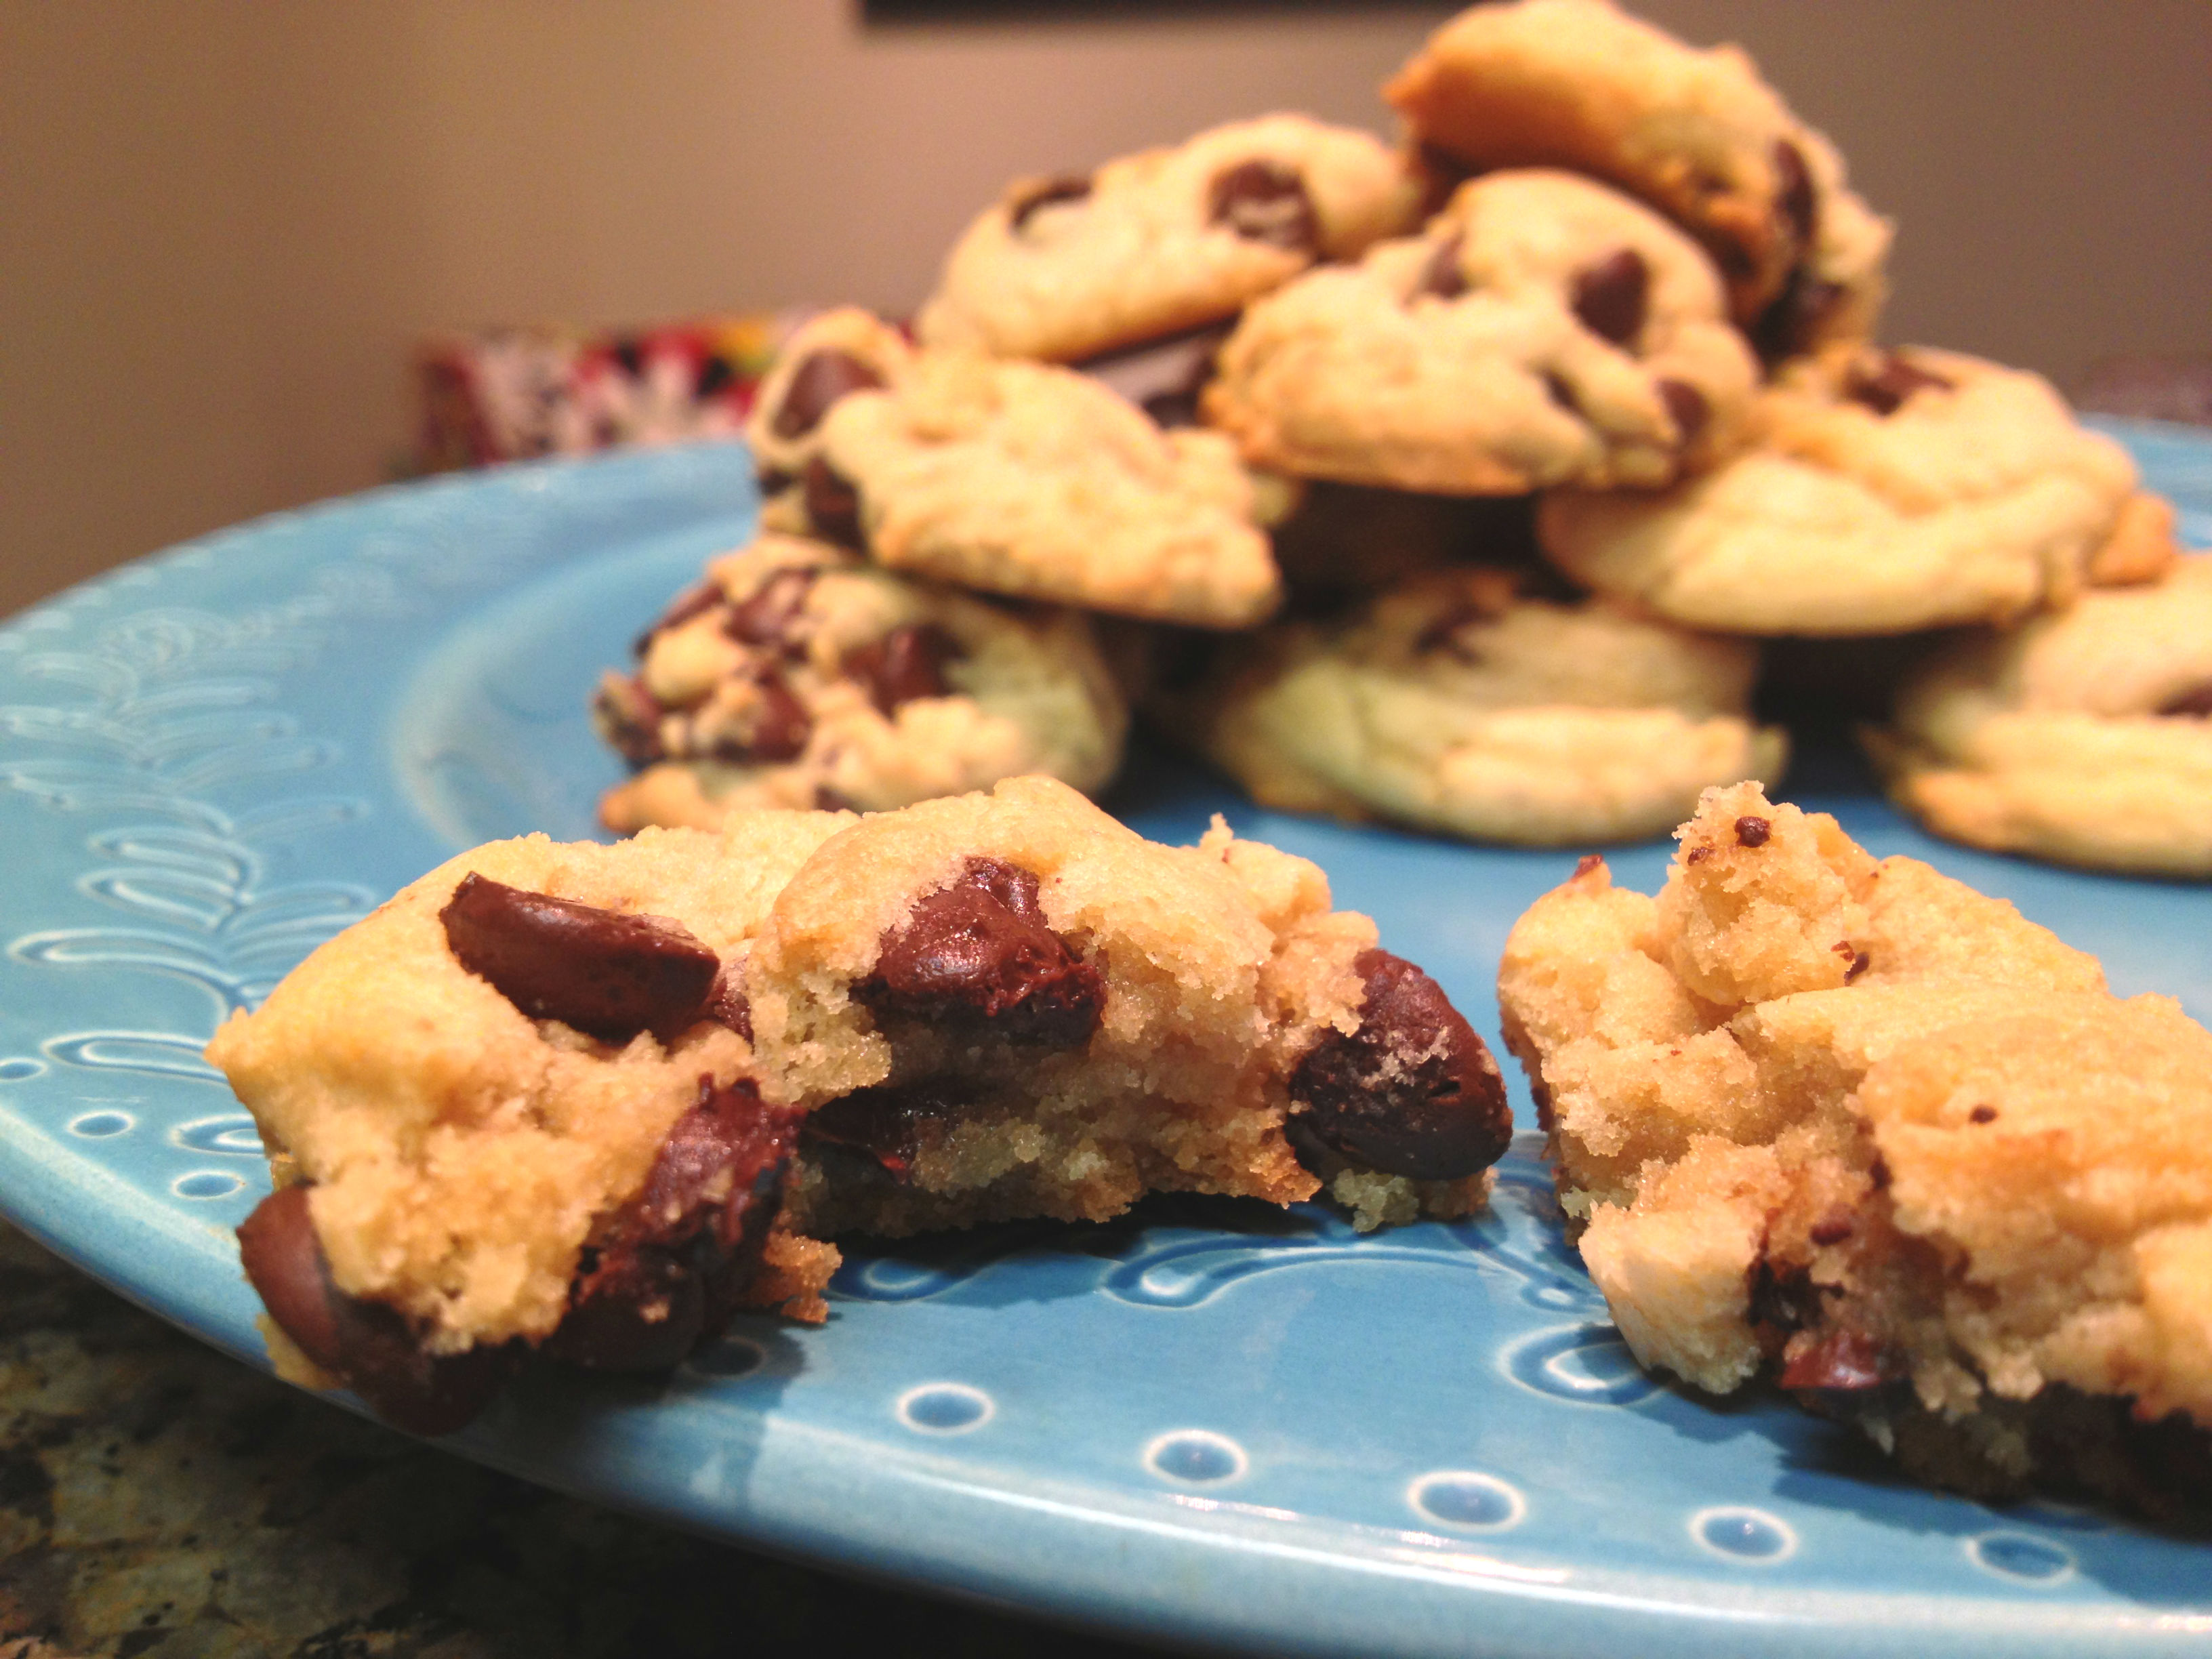 choc chip cookies 3